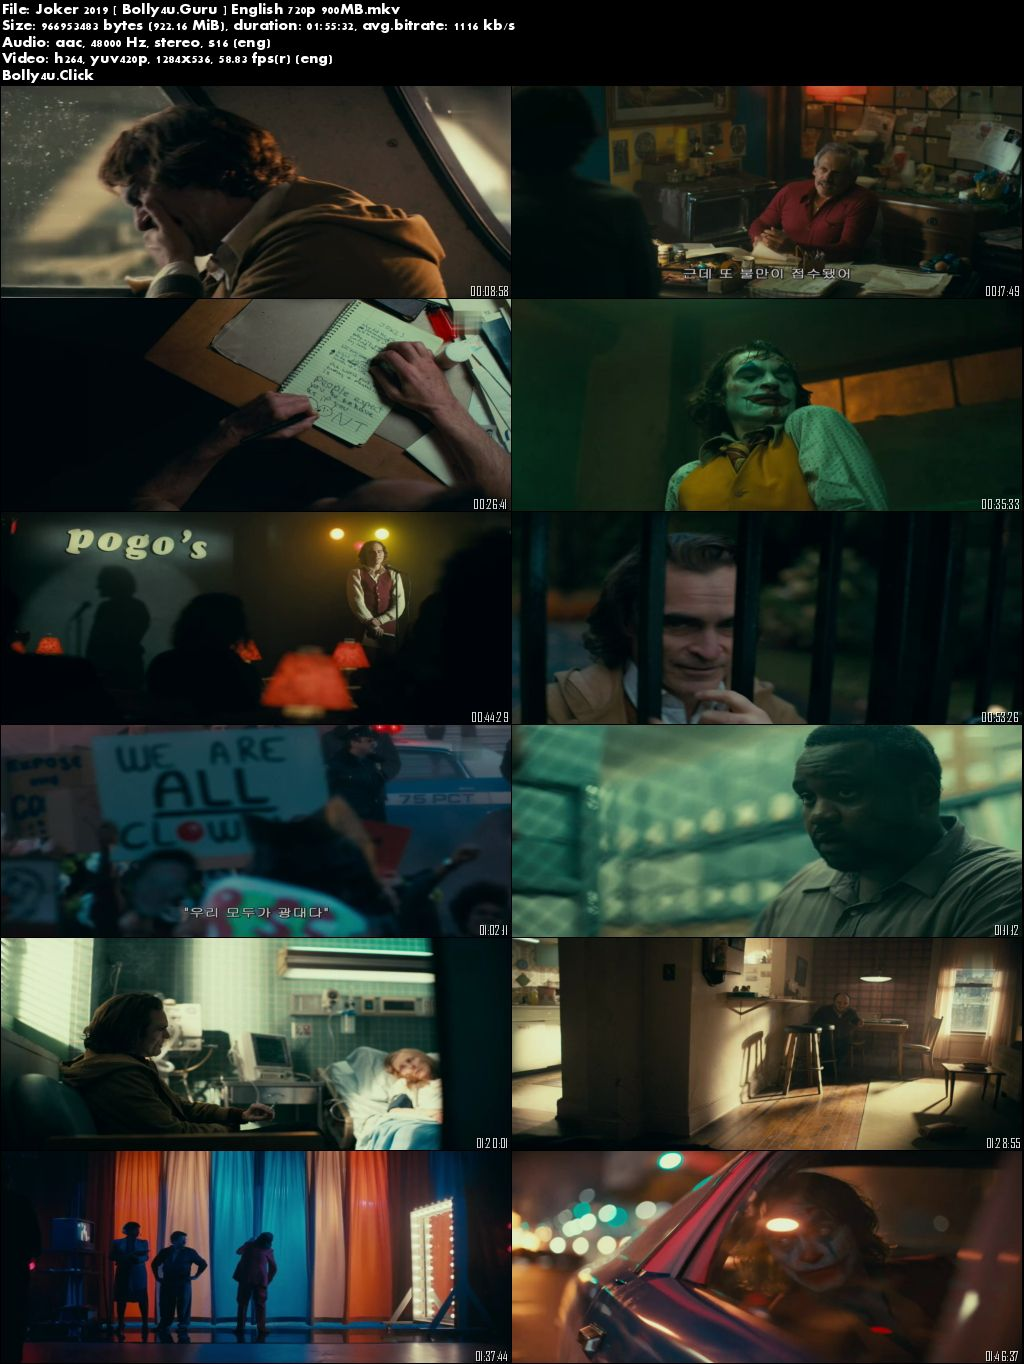 Joker 2019 HDRip 900Mb English 720p Download